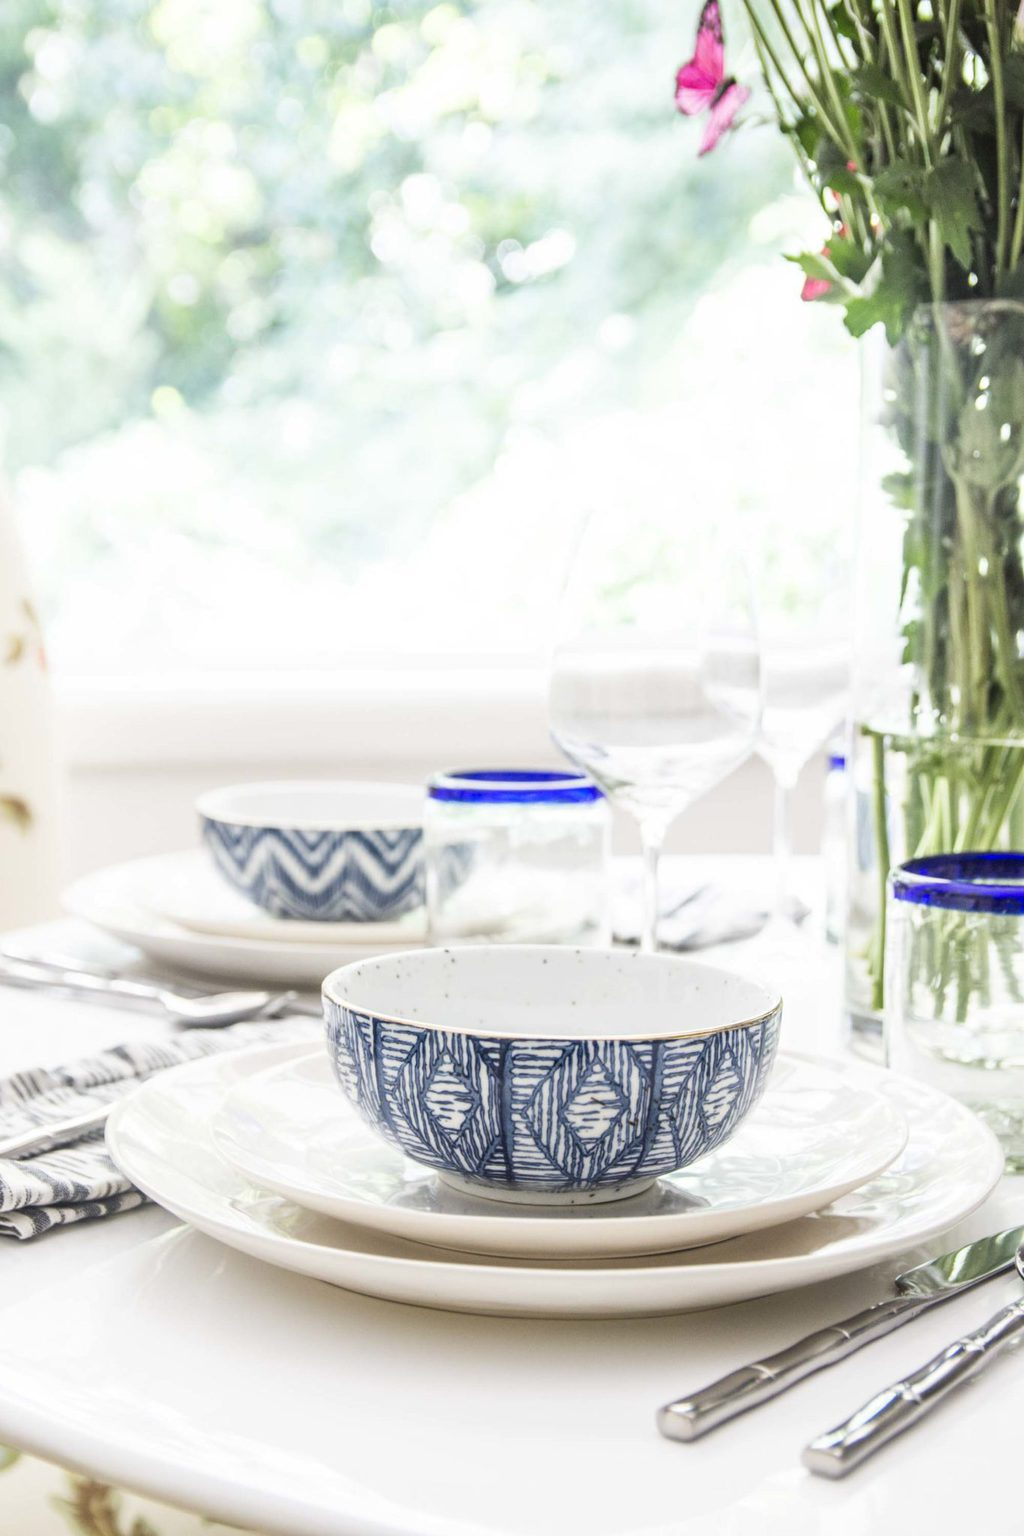 Whimsical patterned table setting on Thou Swell @thouswellblog